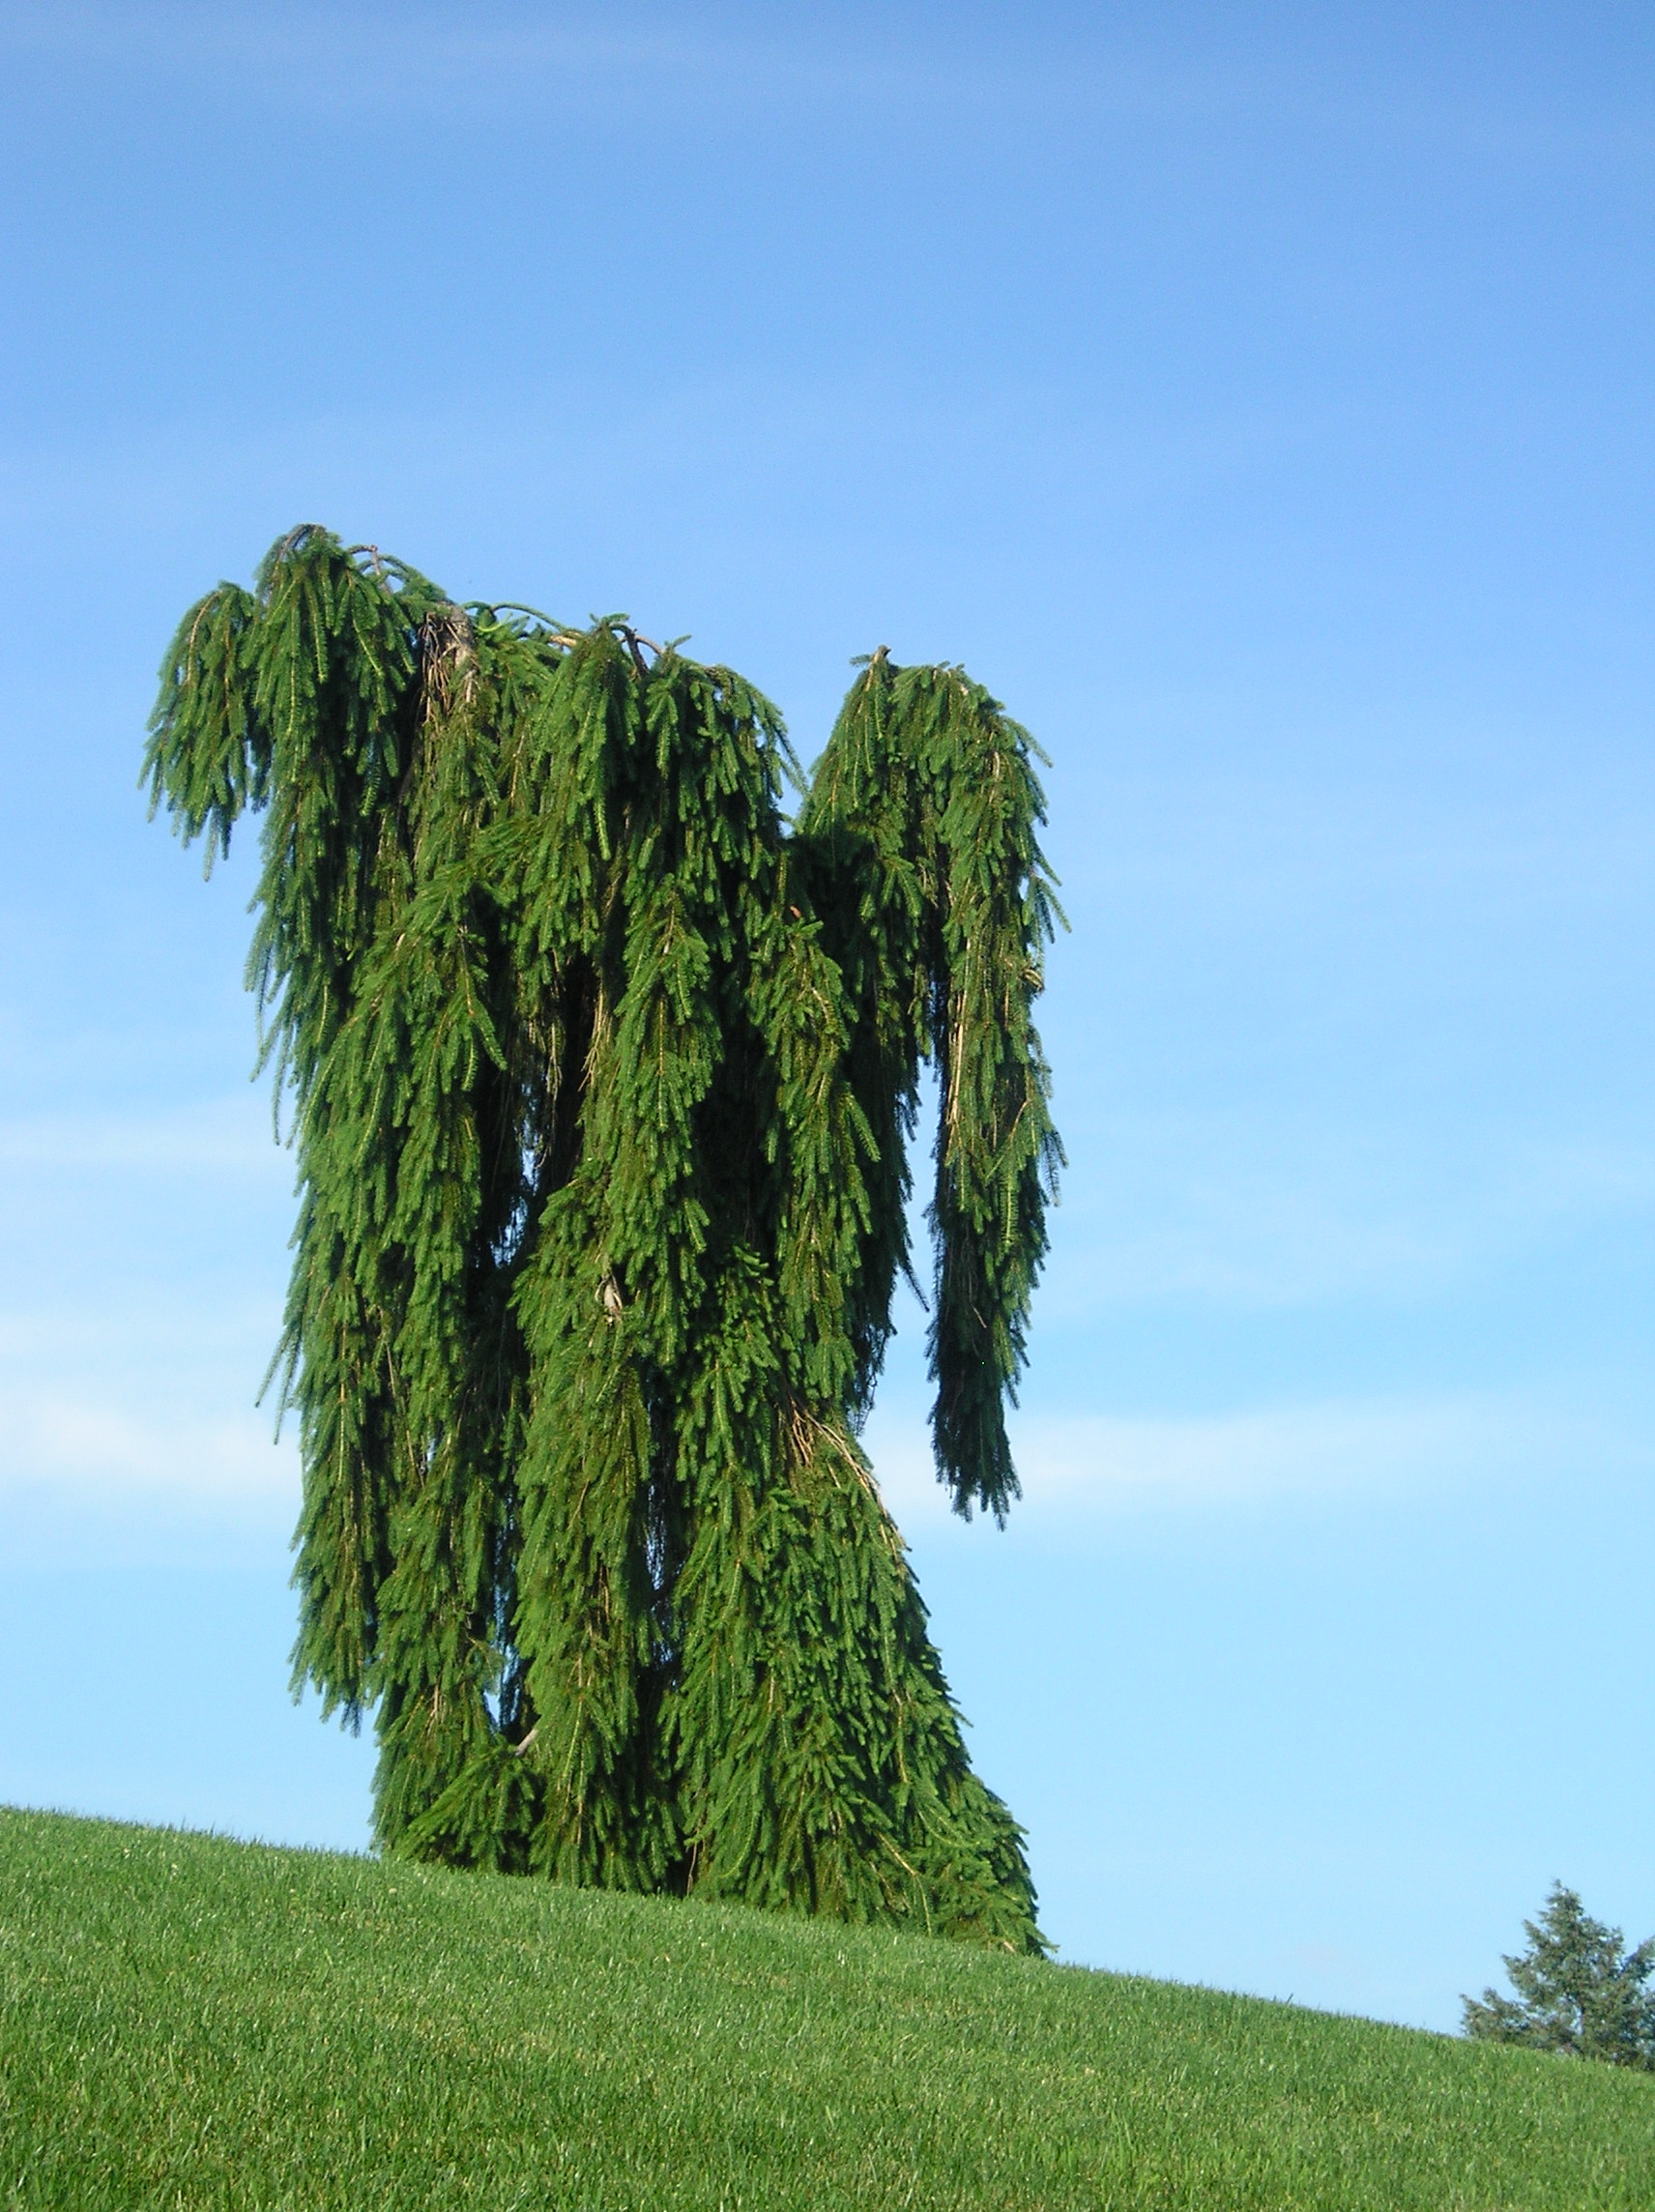 Weeping Norway Spruce (Picea abies) | Flickr - Photo Sharing!